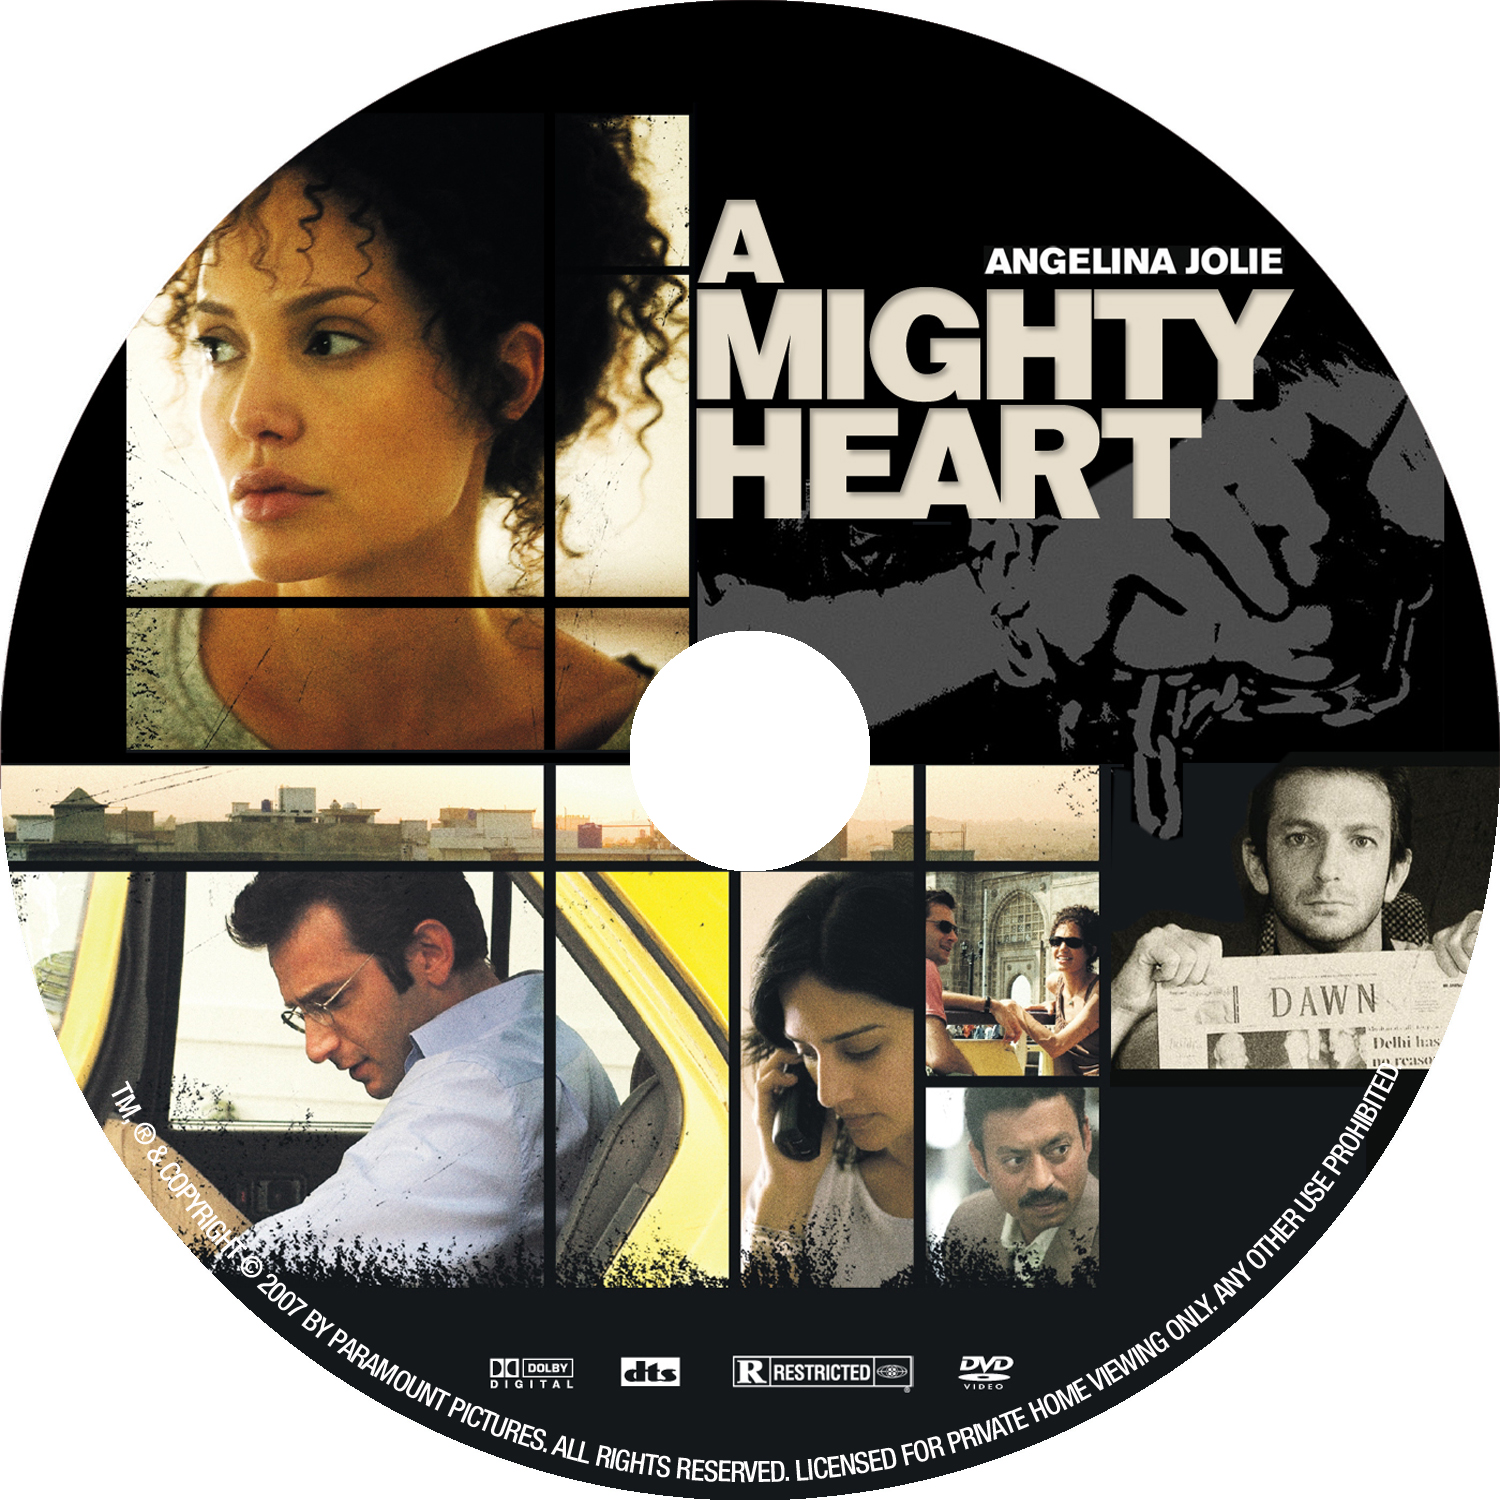 a mighty heart 2007 movie movie insider taking you auto